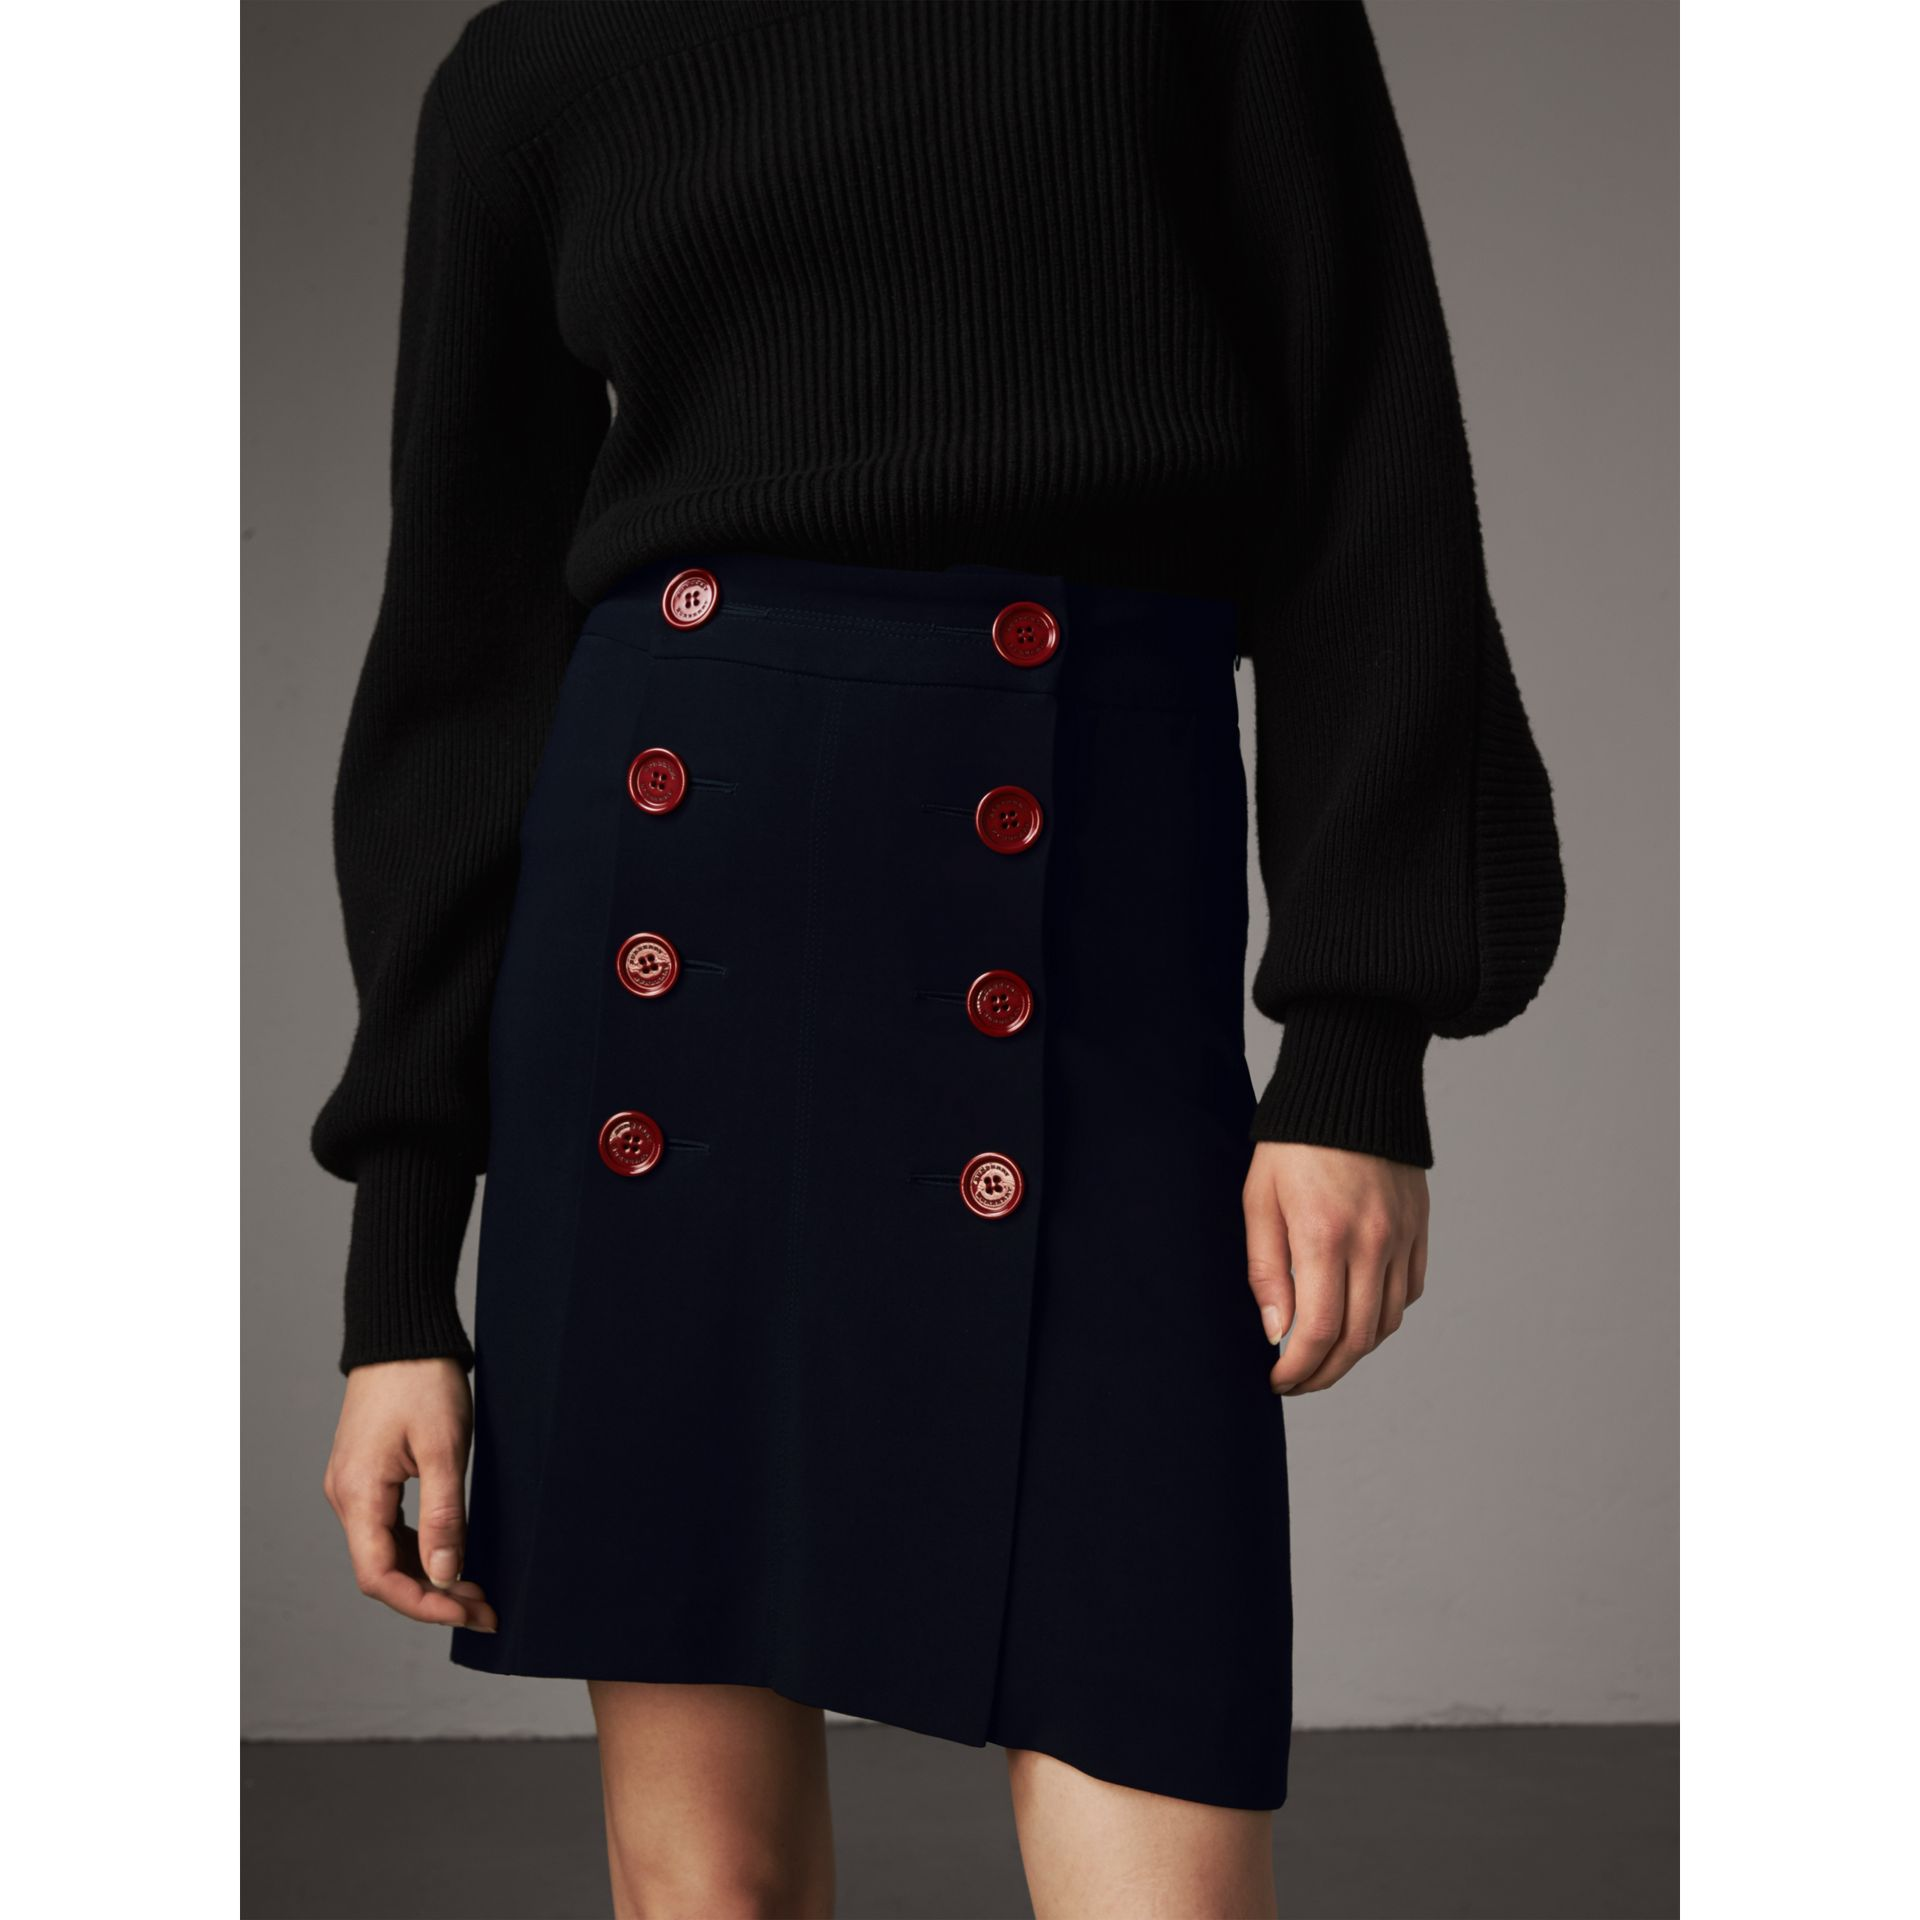 Resin Button Double-breasted Tailored Skirt in Navy - Women | Burberry Singapore - gallery image 1